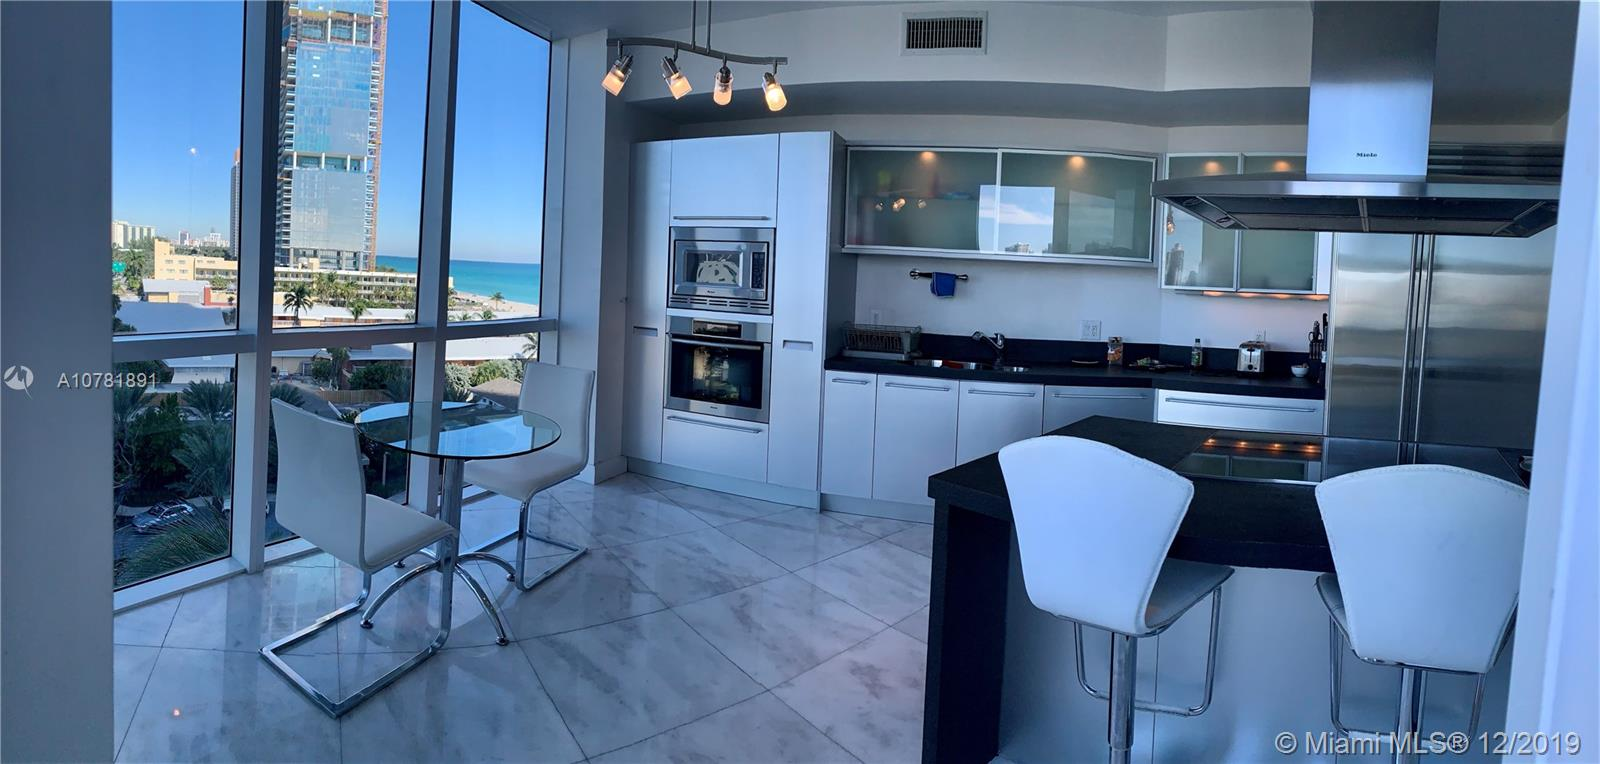 18201 Collins Ave, 801 - Sunny Isles Beach, Florida